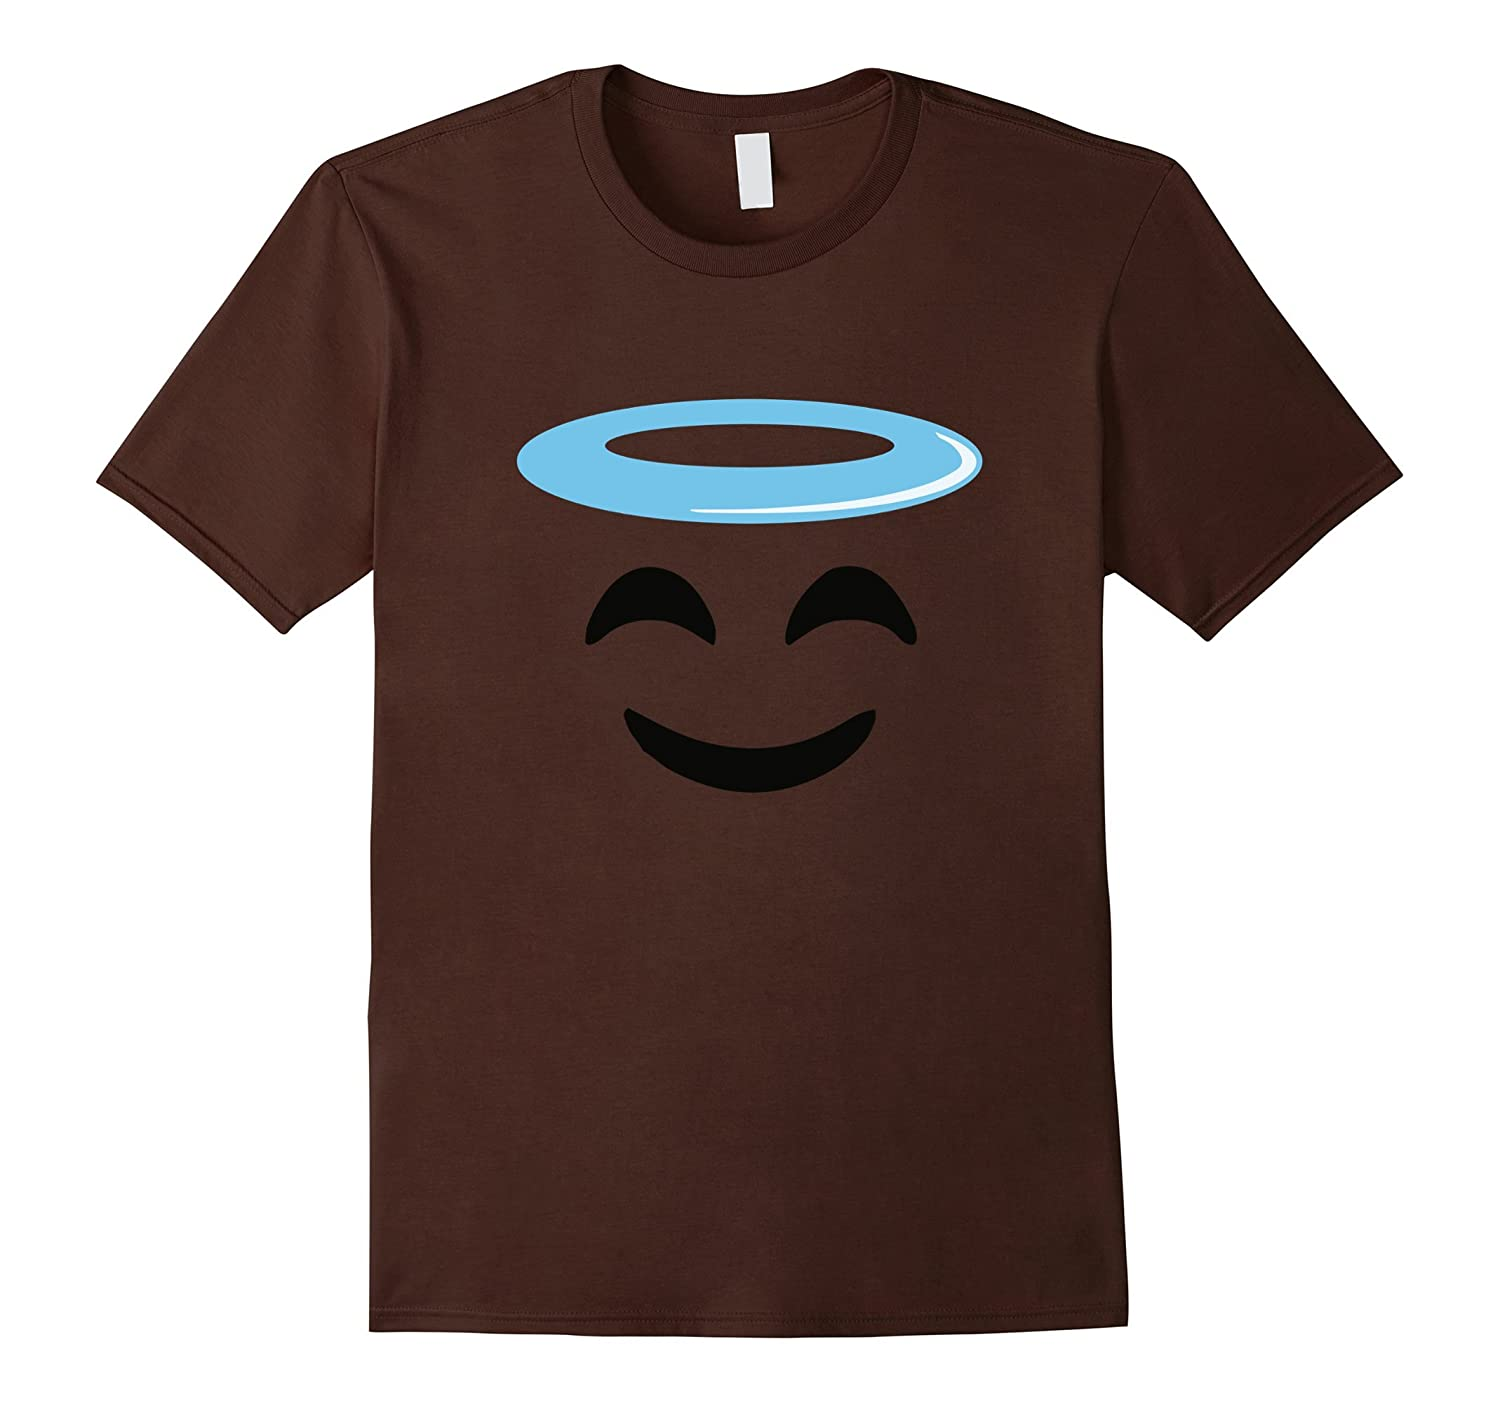 Angel Smile Face Funny Emoji tee shirt group costume-T-Shirt